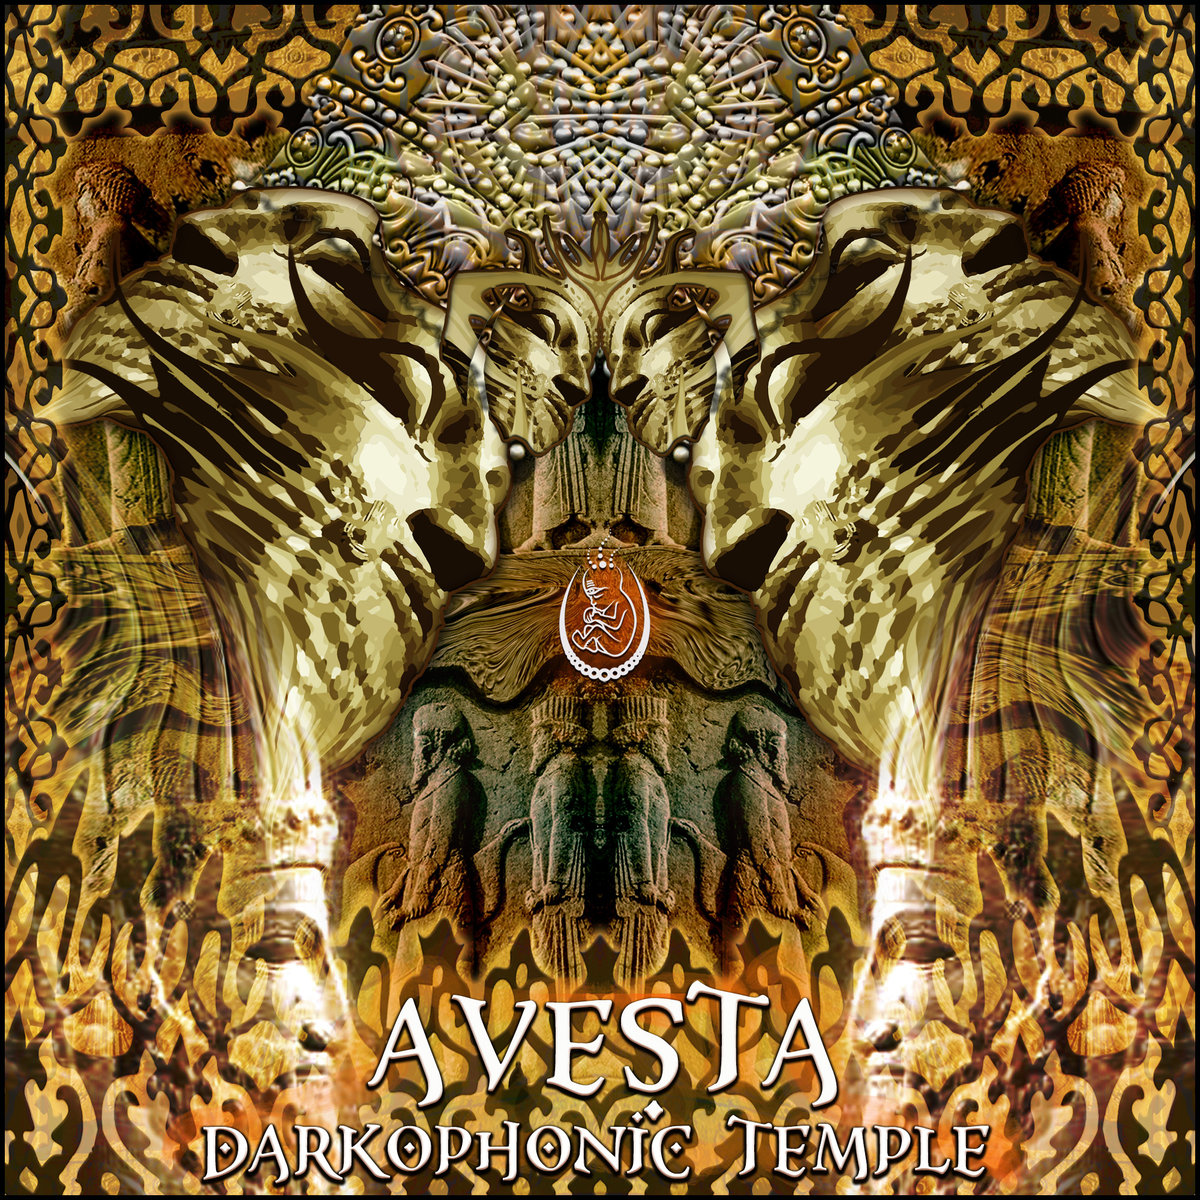 Darkophonic Temple - Call of the Avesta @ 'Avesta' album (ambient, electronic)